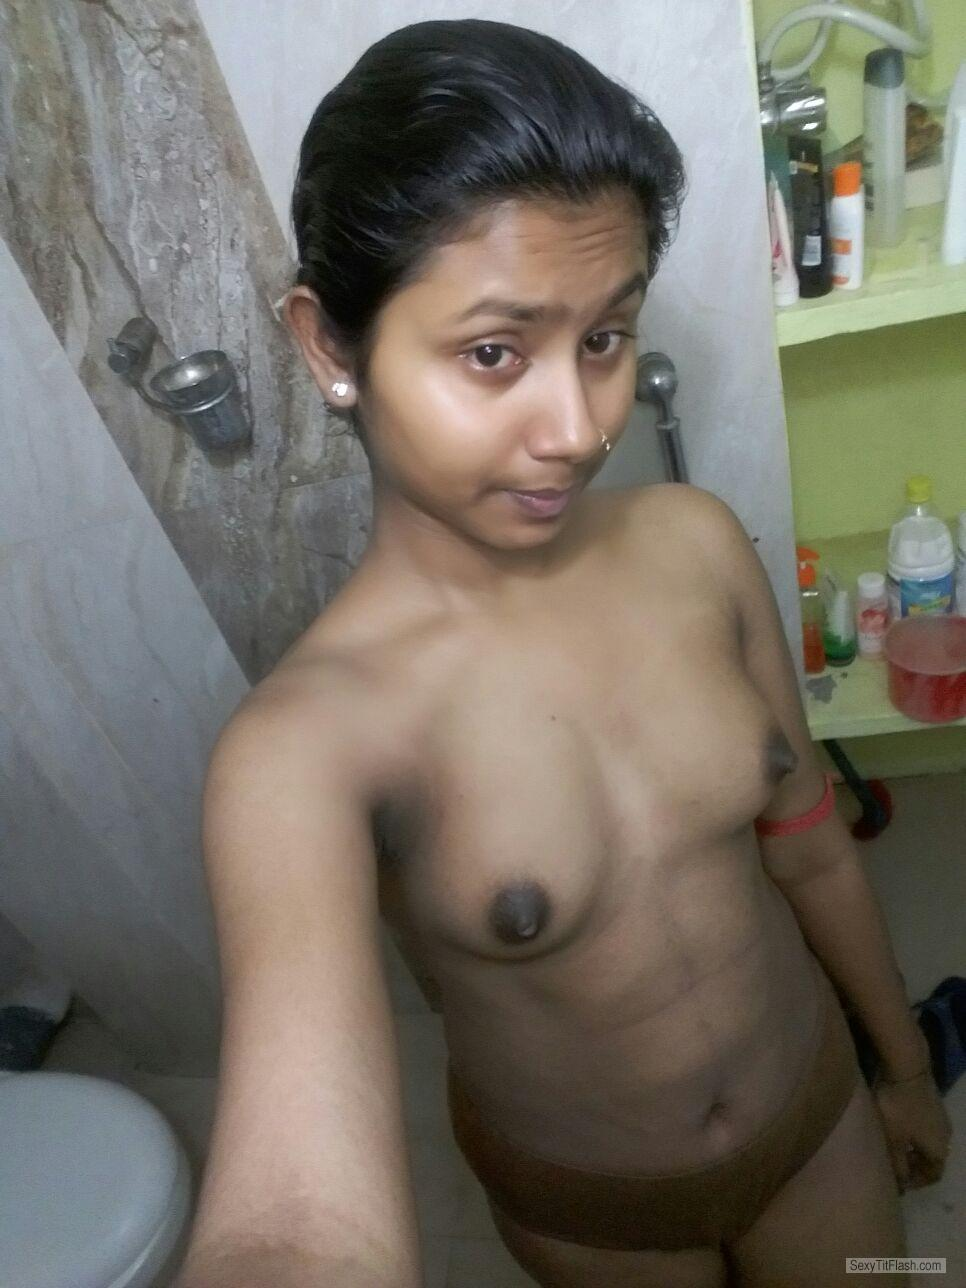 My Big Tits Topless Selfie by Sayani Bhoj